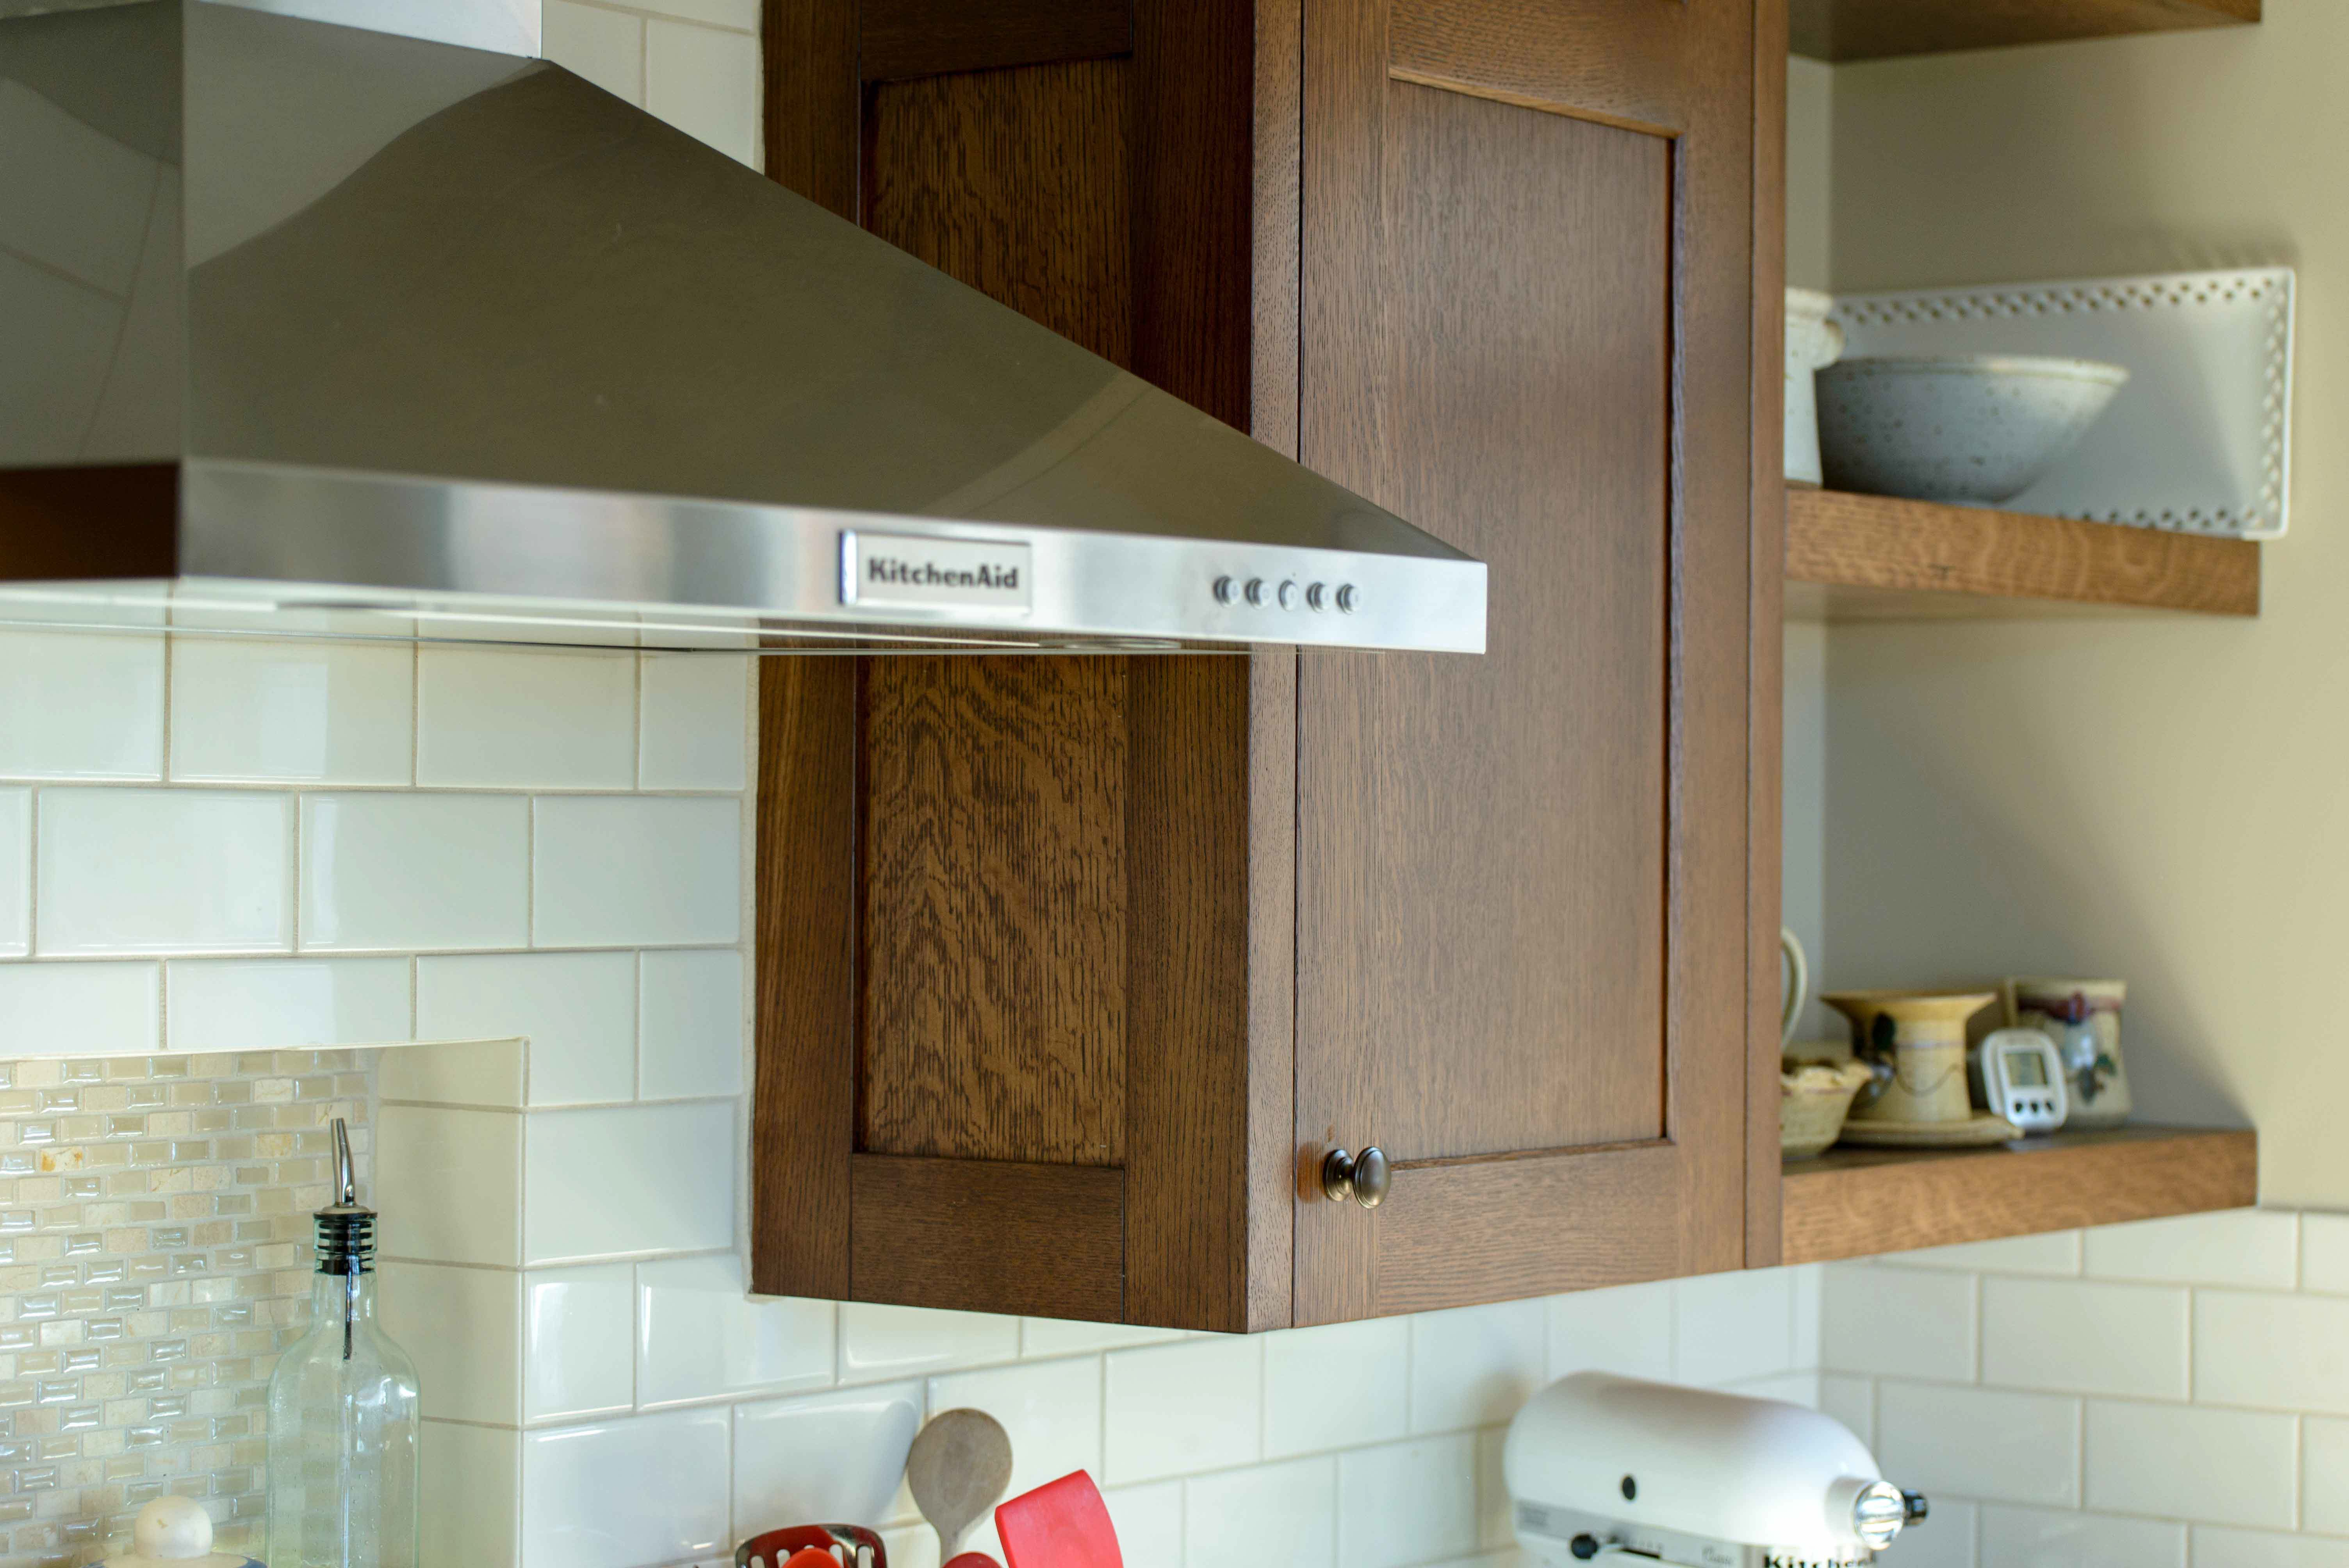 Stained wood cabinets & shelving